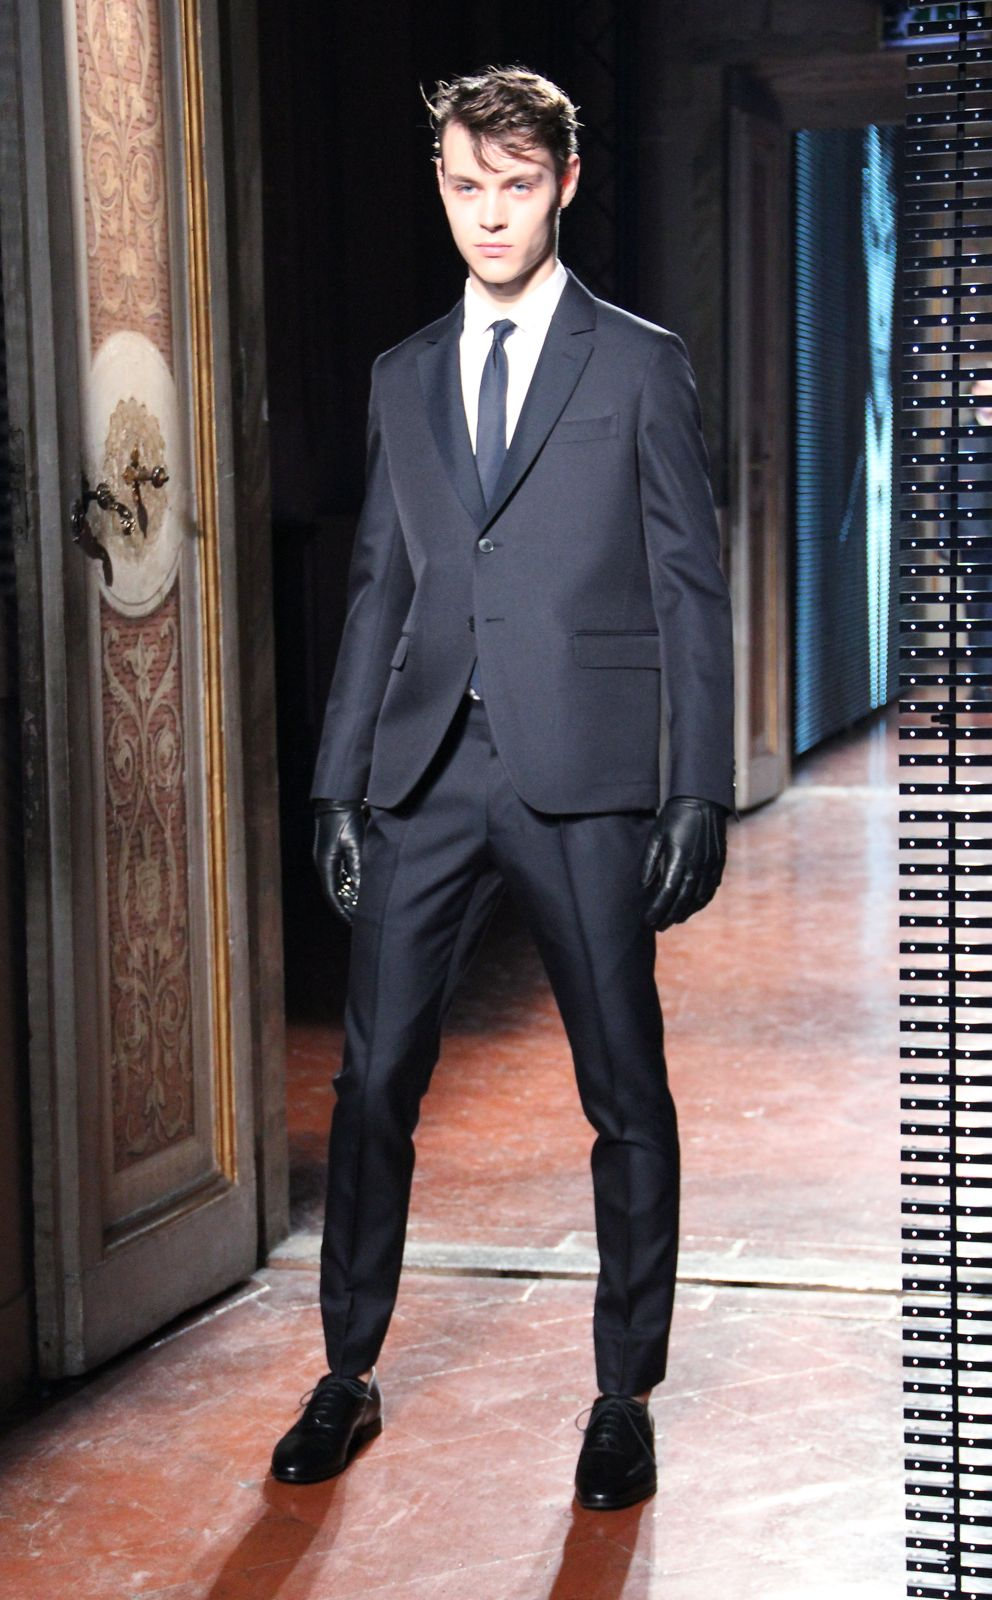 Valentino Men's Collection Fall Winter 2012-13 Pitti Immagine Uomo